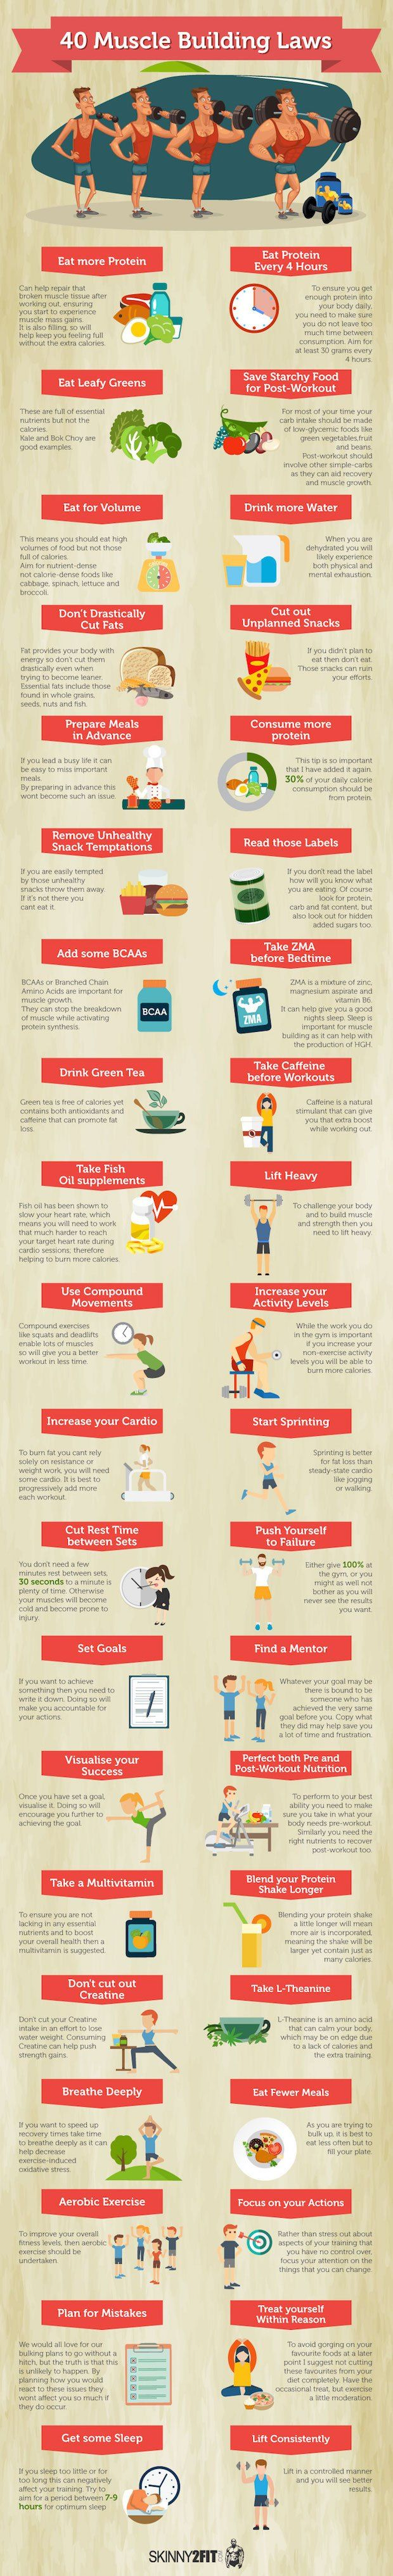 Muscle Building Laws [by Skinny2Fit -- via #tipsographic]. More at tipsographic.com